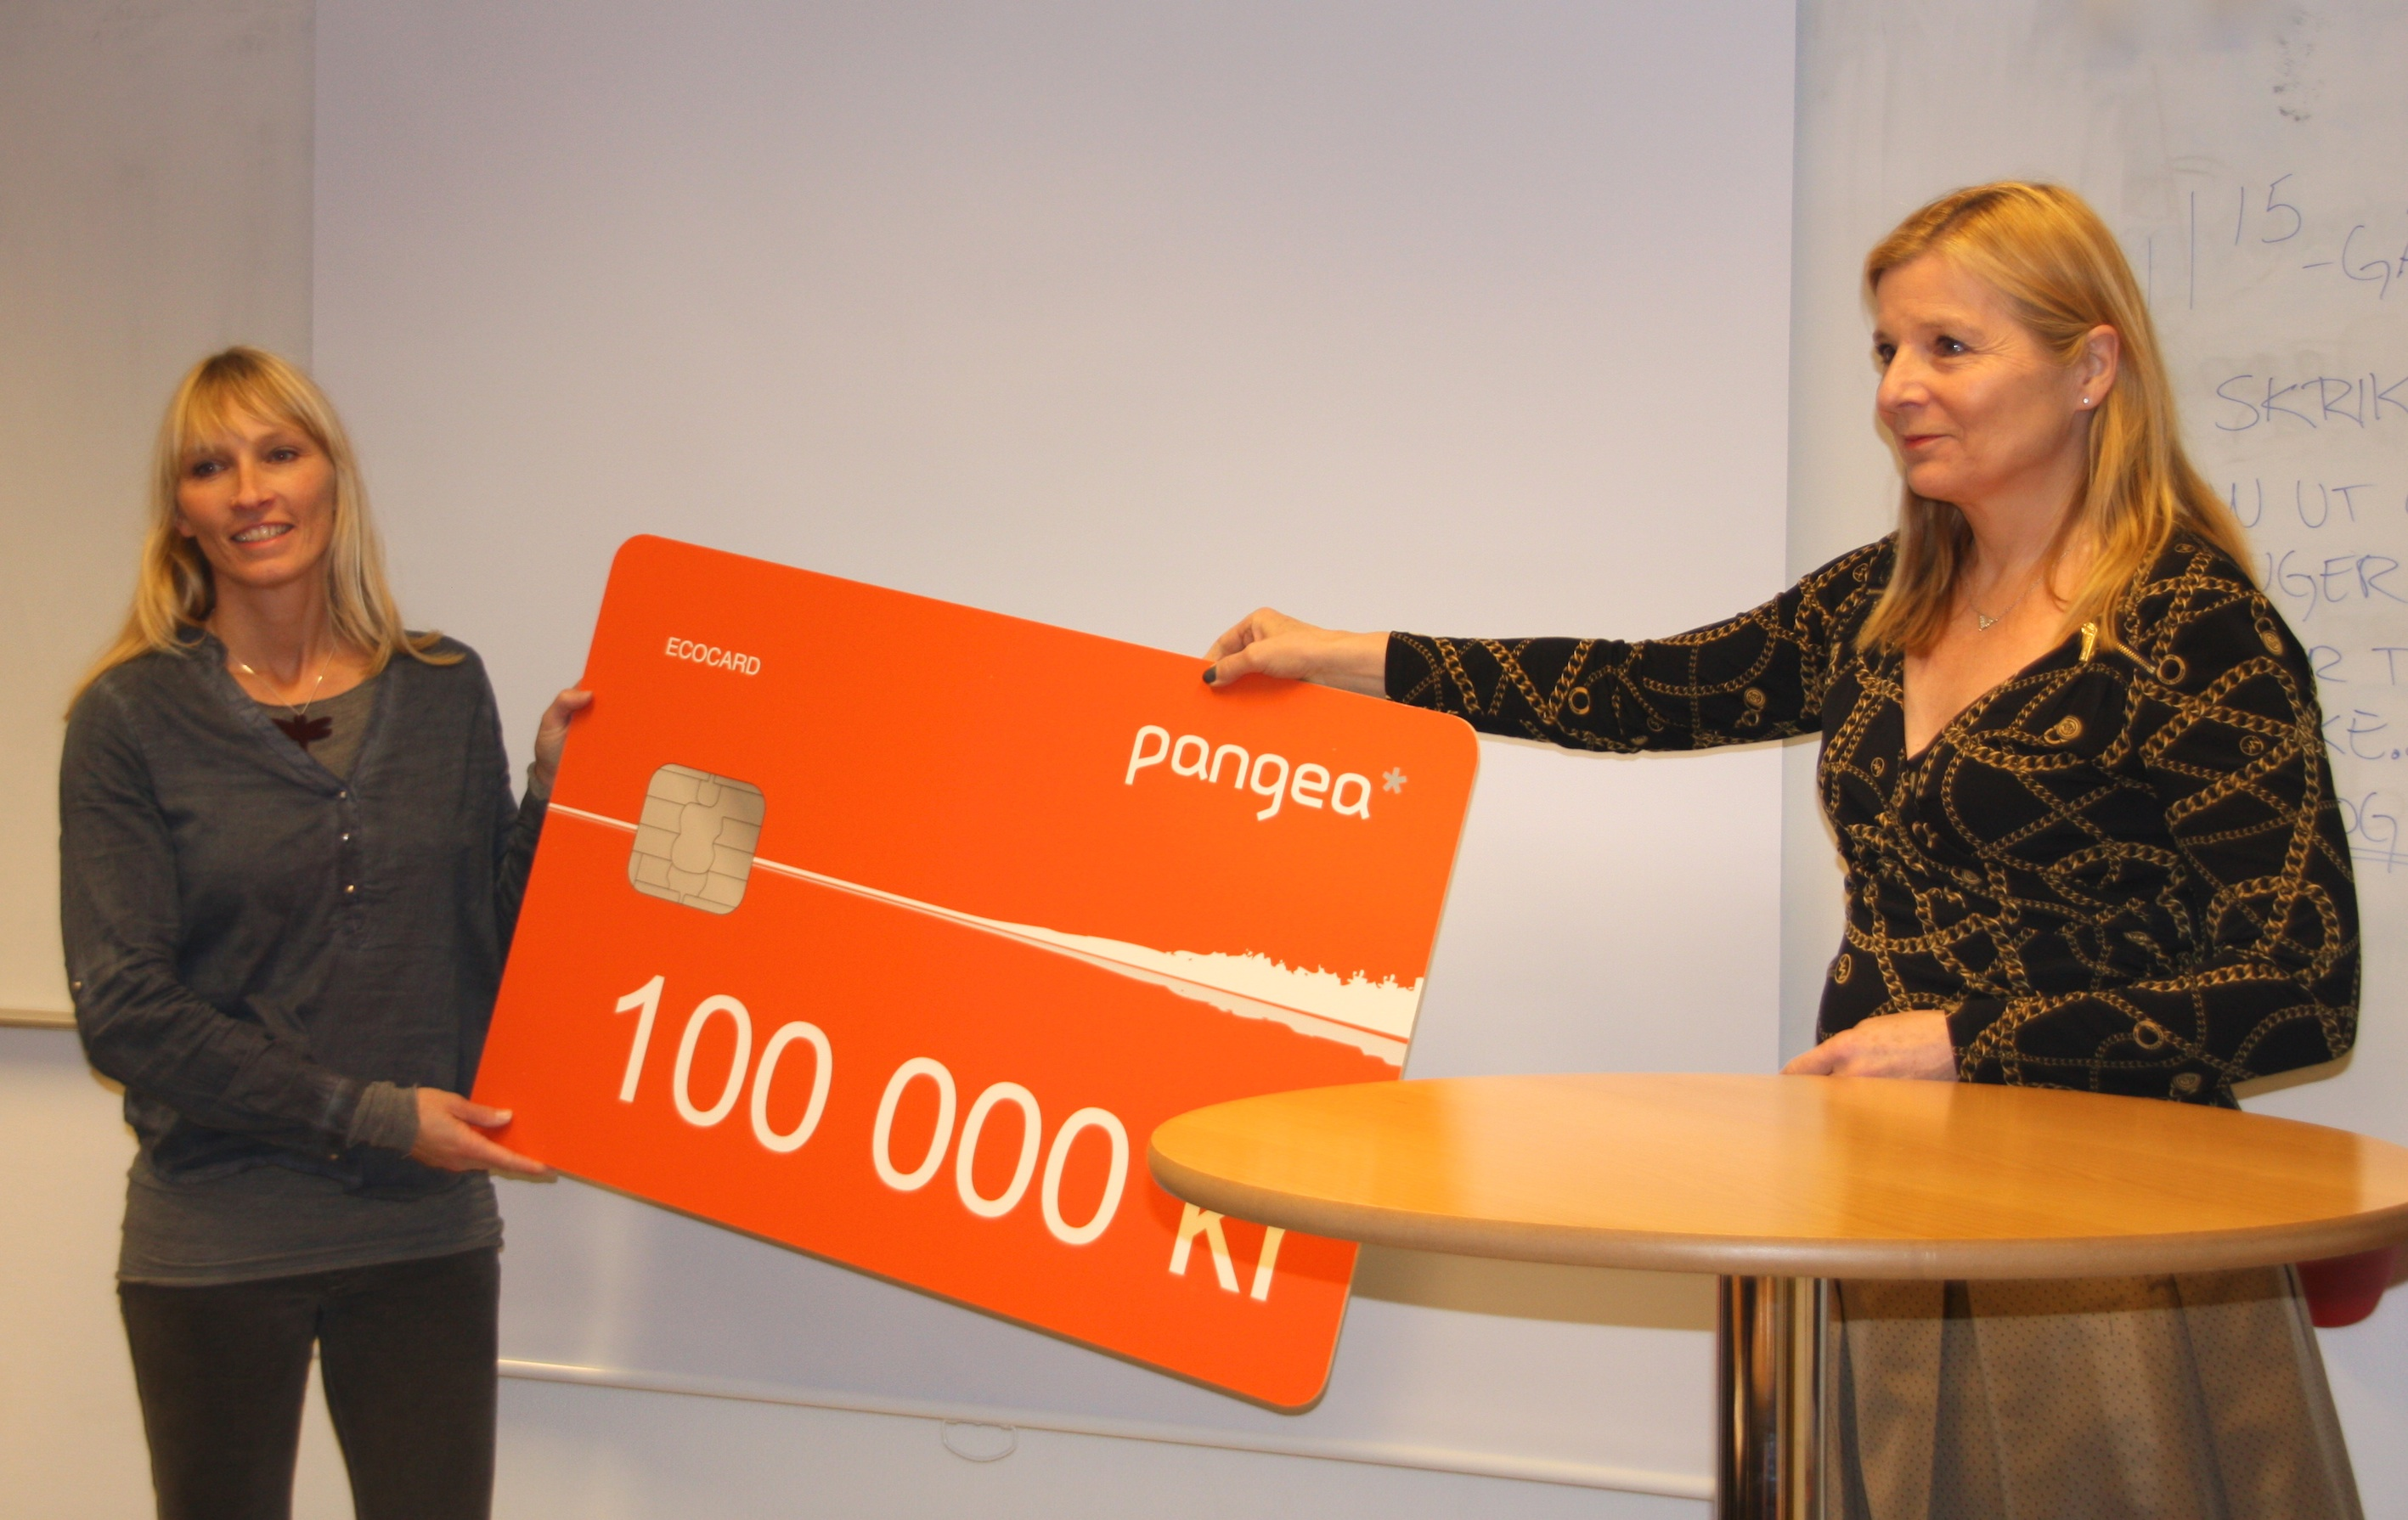 Head of the board of the Pangea Foundation, Ingrid Stange (right), gives the prize to Lise Wulff, founder of the Scream from Nature